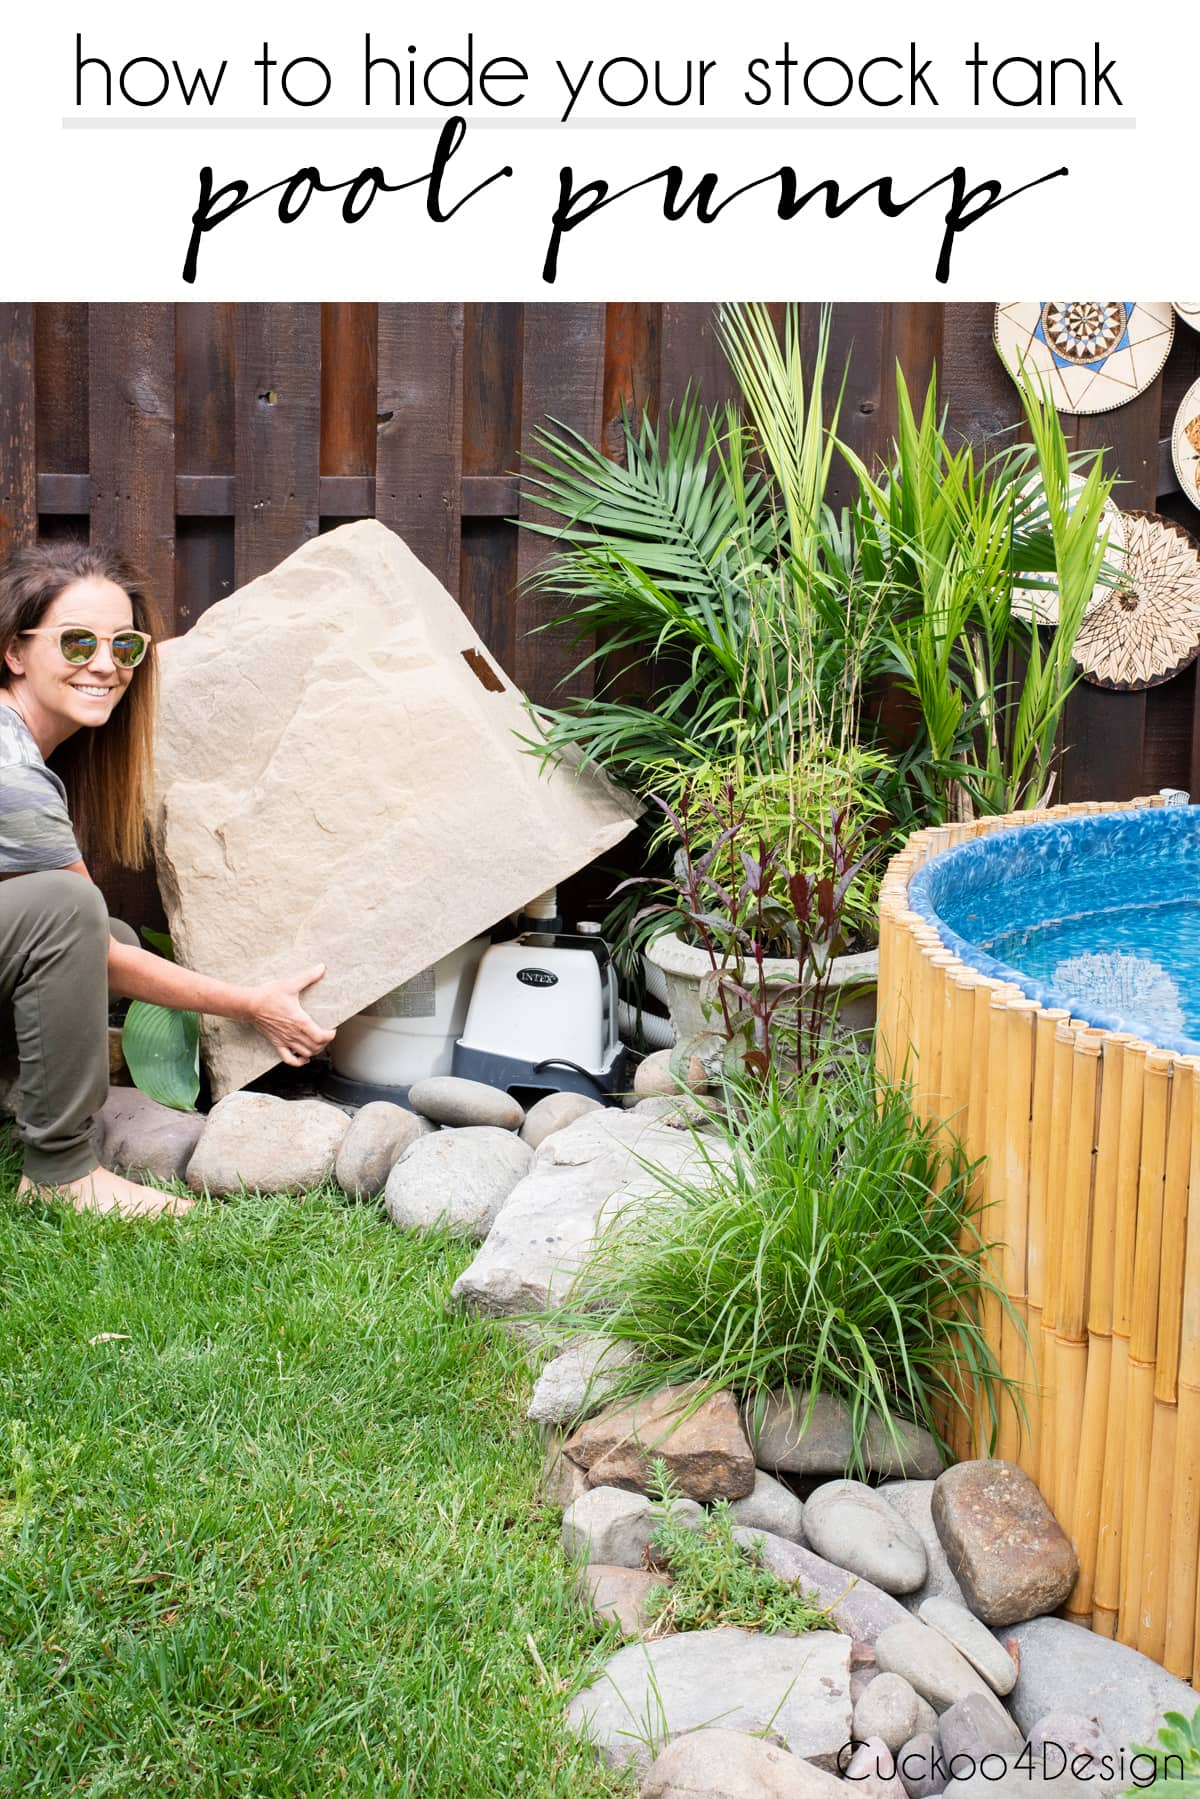 How to hide your stock tank pool pump with the perfect pool pump cover